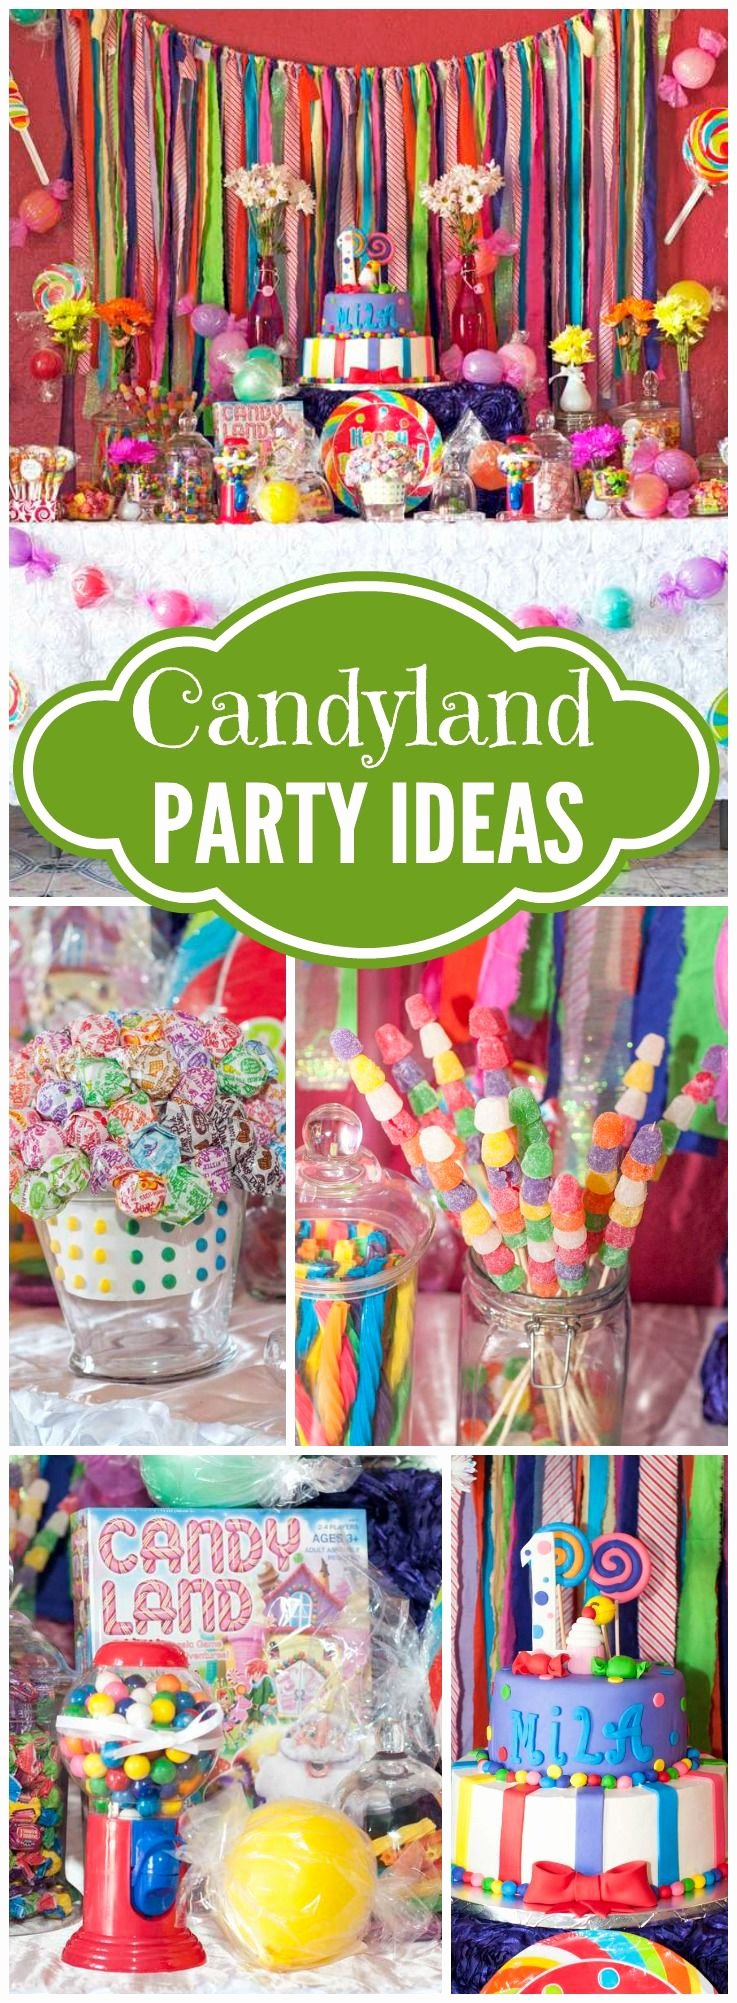 "Candyland Birthday Decoration Ideas Luxury Candyland Birthday ""mila S 1st Candyland"""